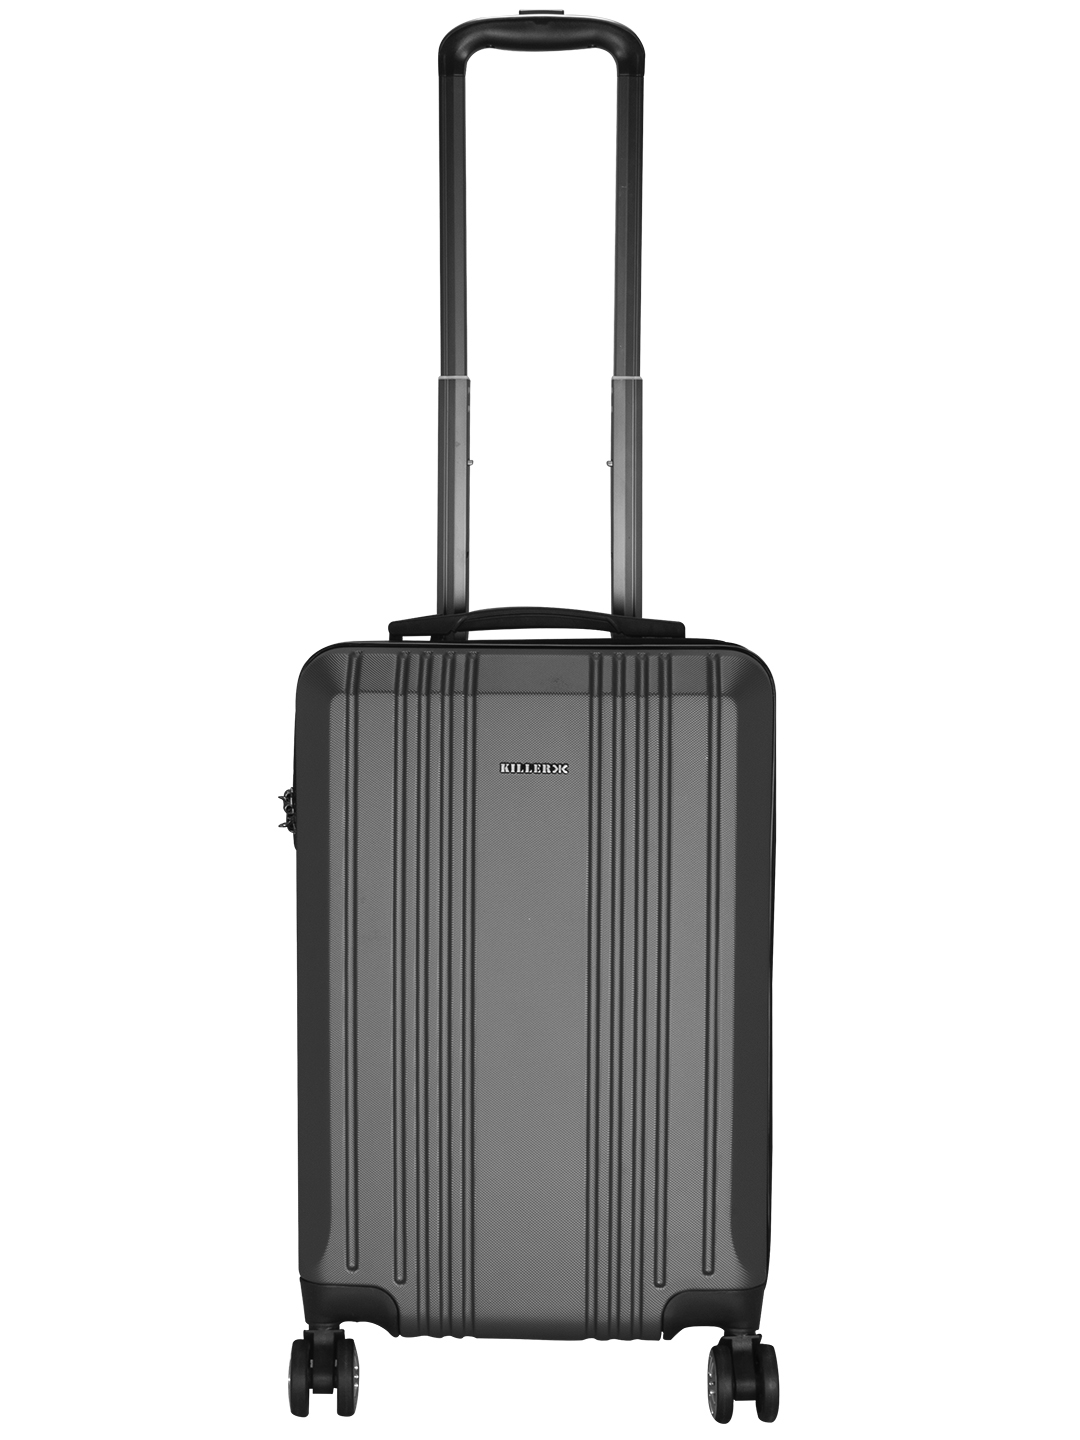 Hilton Polycarbonate (20 inches) Grey Trolley Suitcase